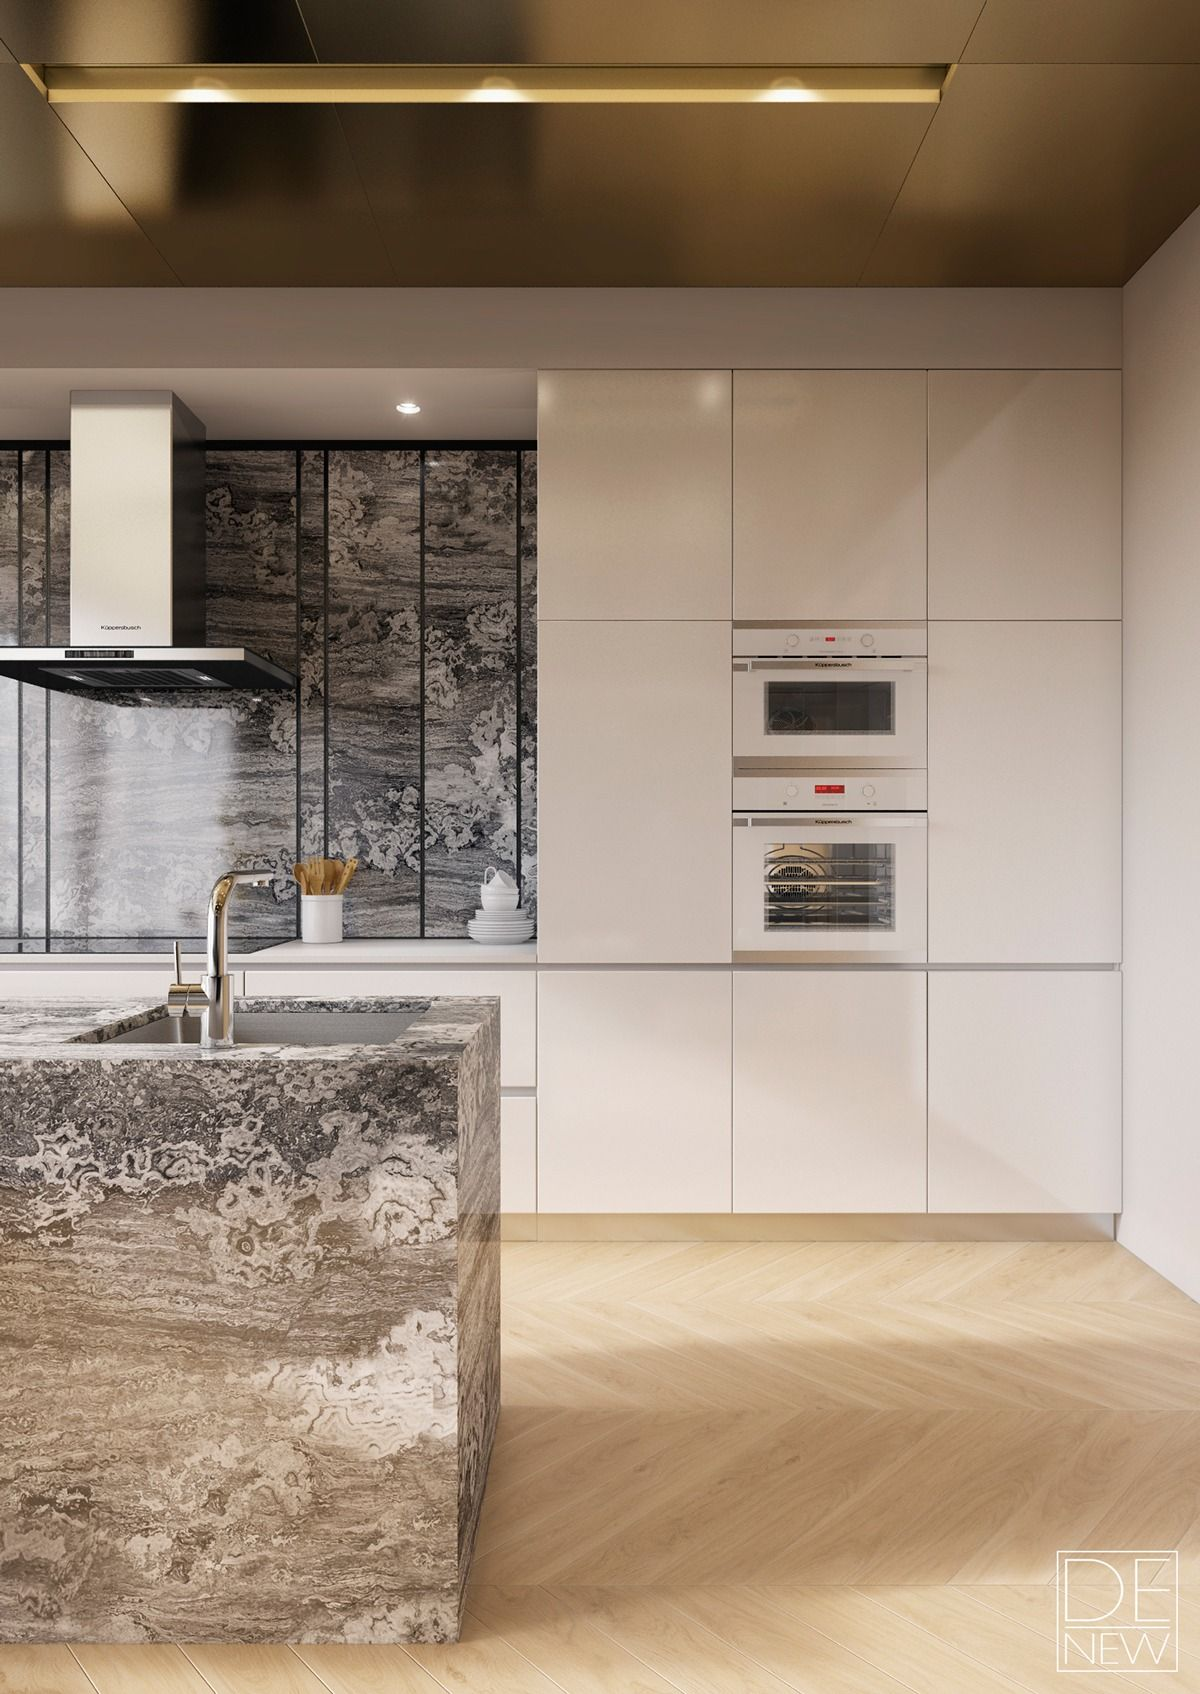 Sleek siematic cabinets play off natural and metallic for Sleek modern kitchen cabinets